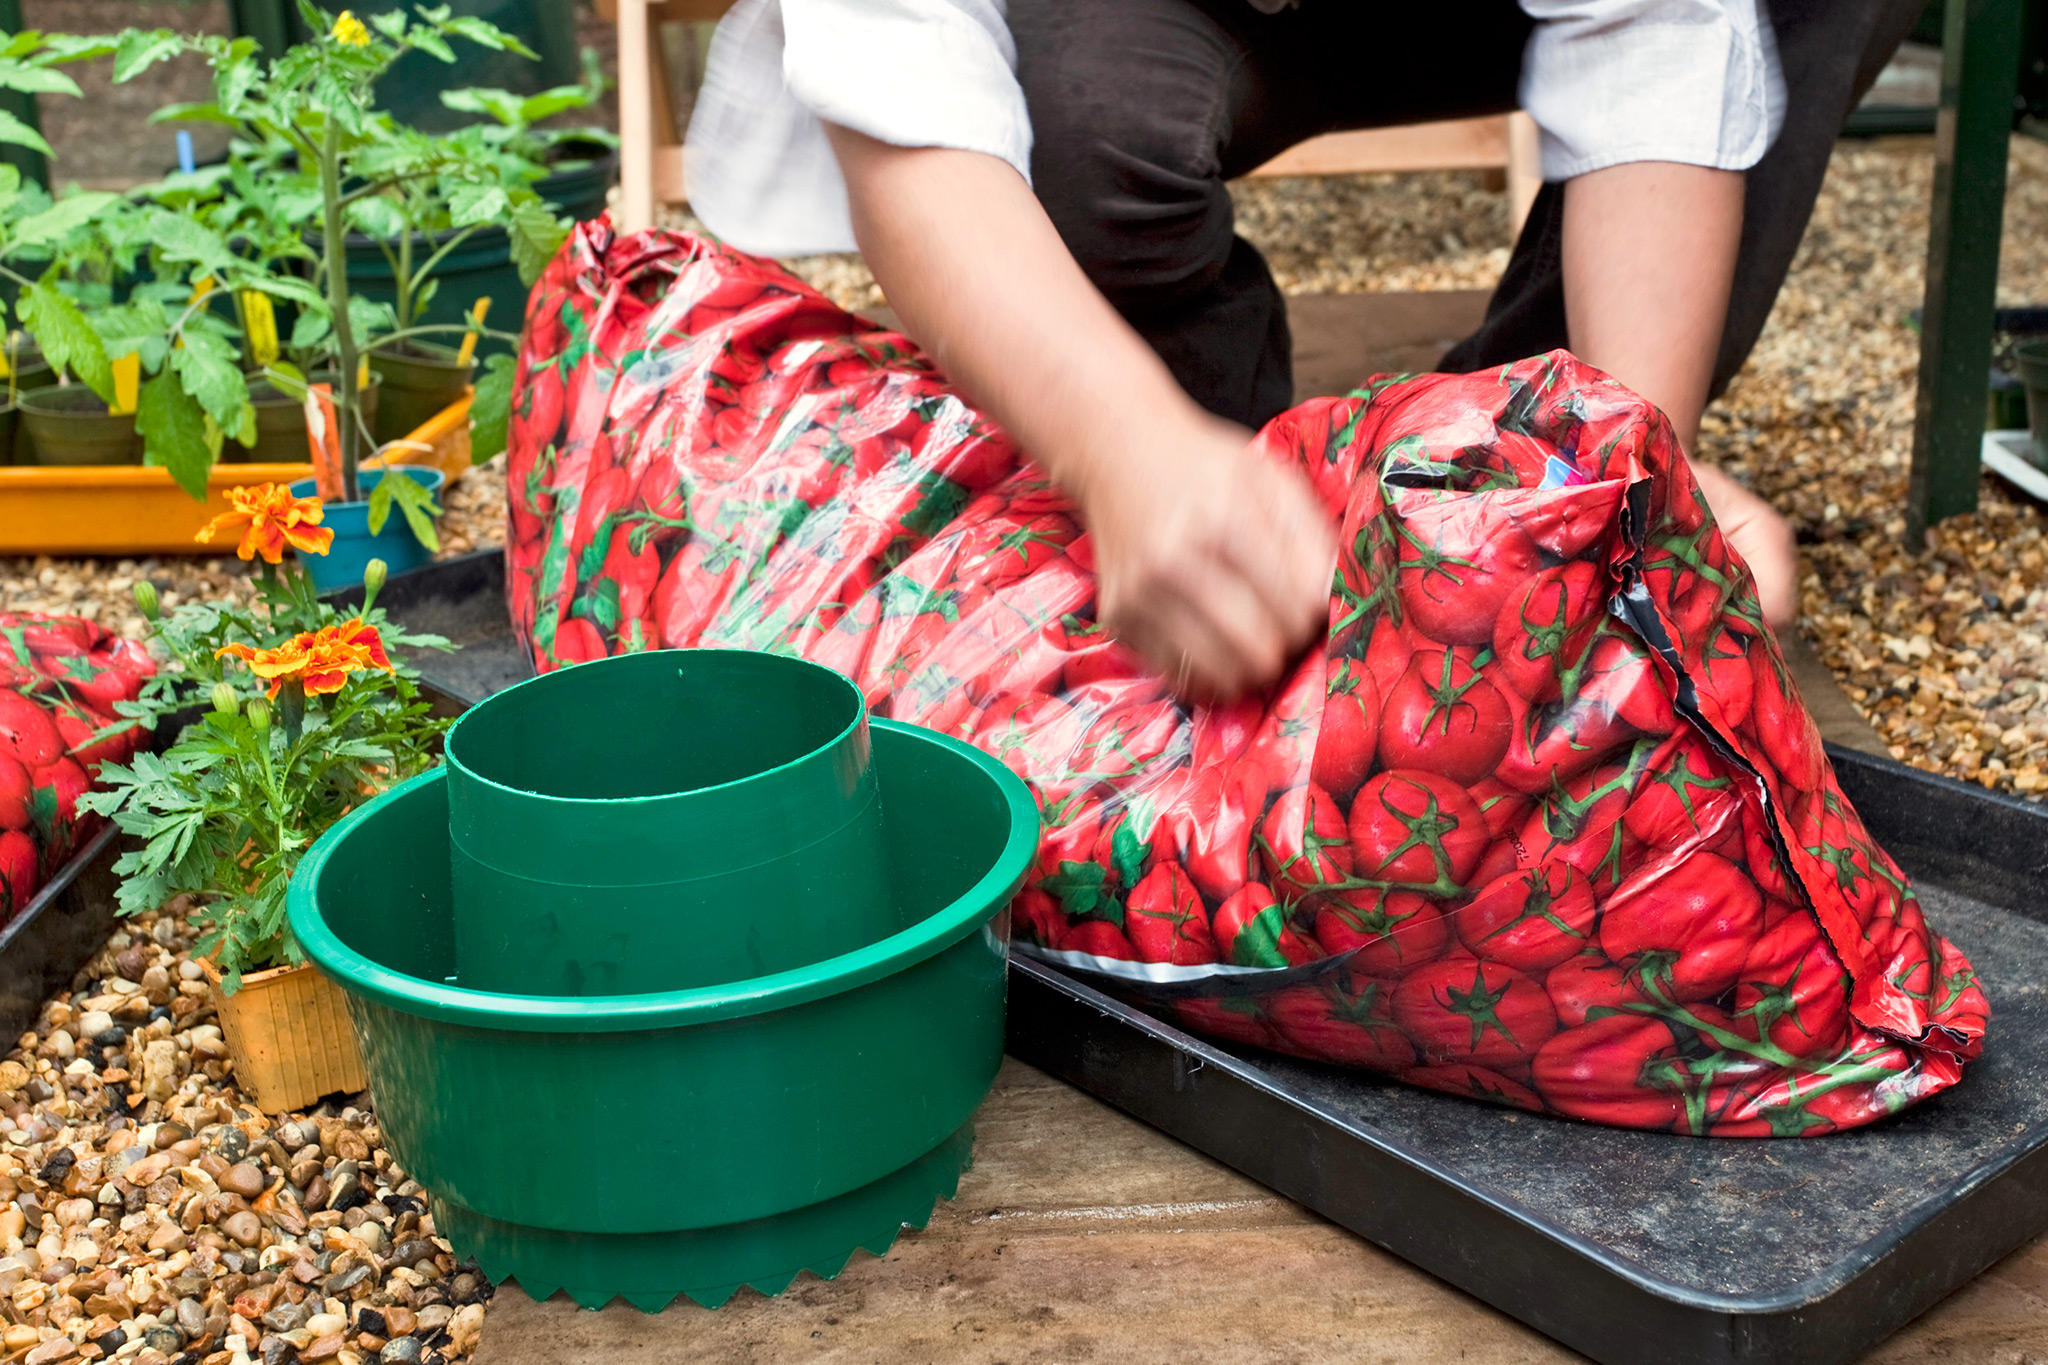 shaking-the-growing-bag-to-dislodge-the-compost-2